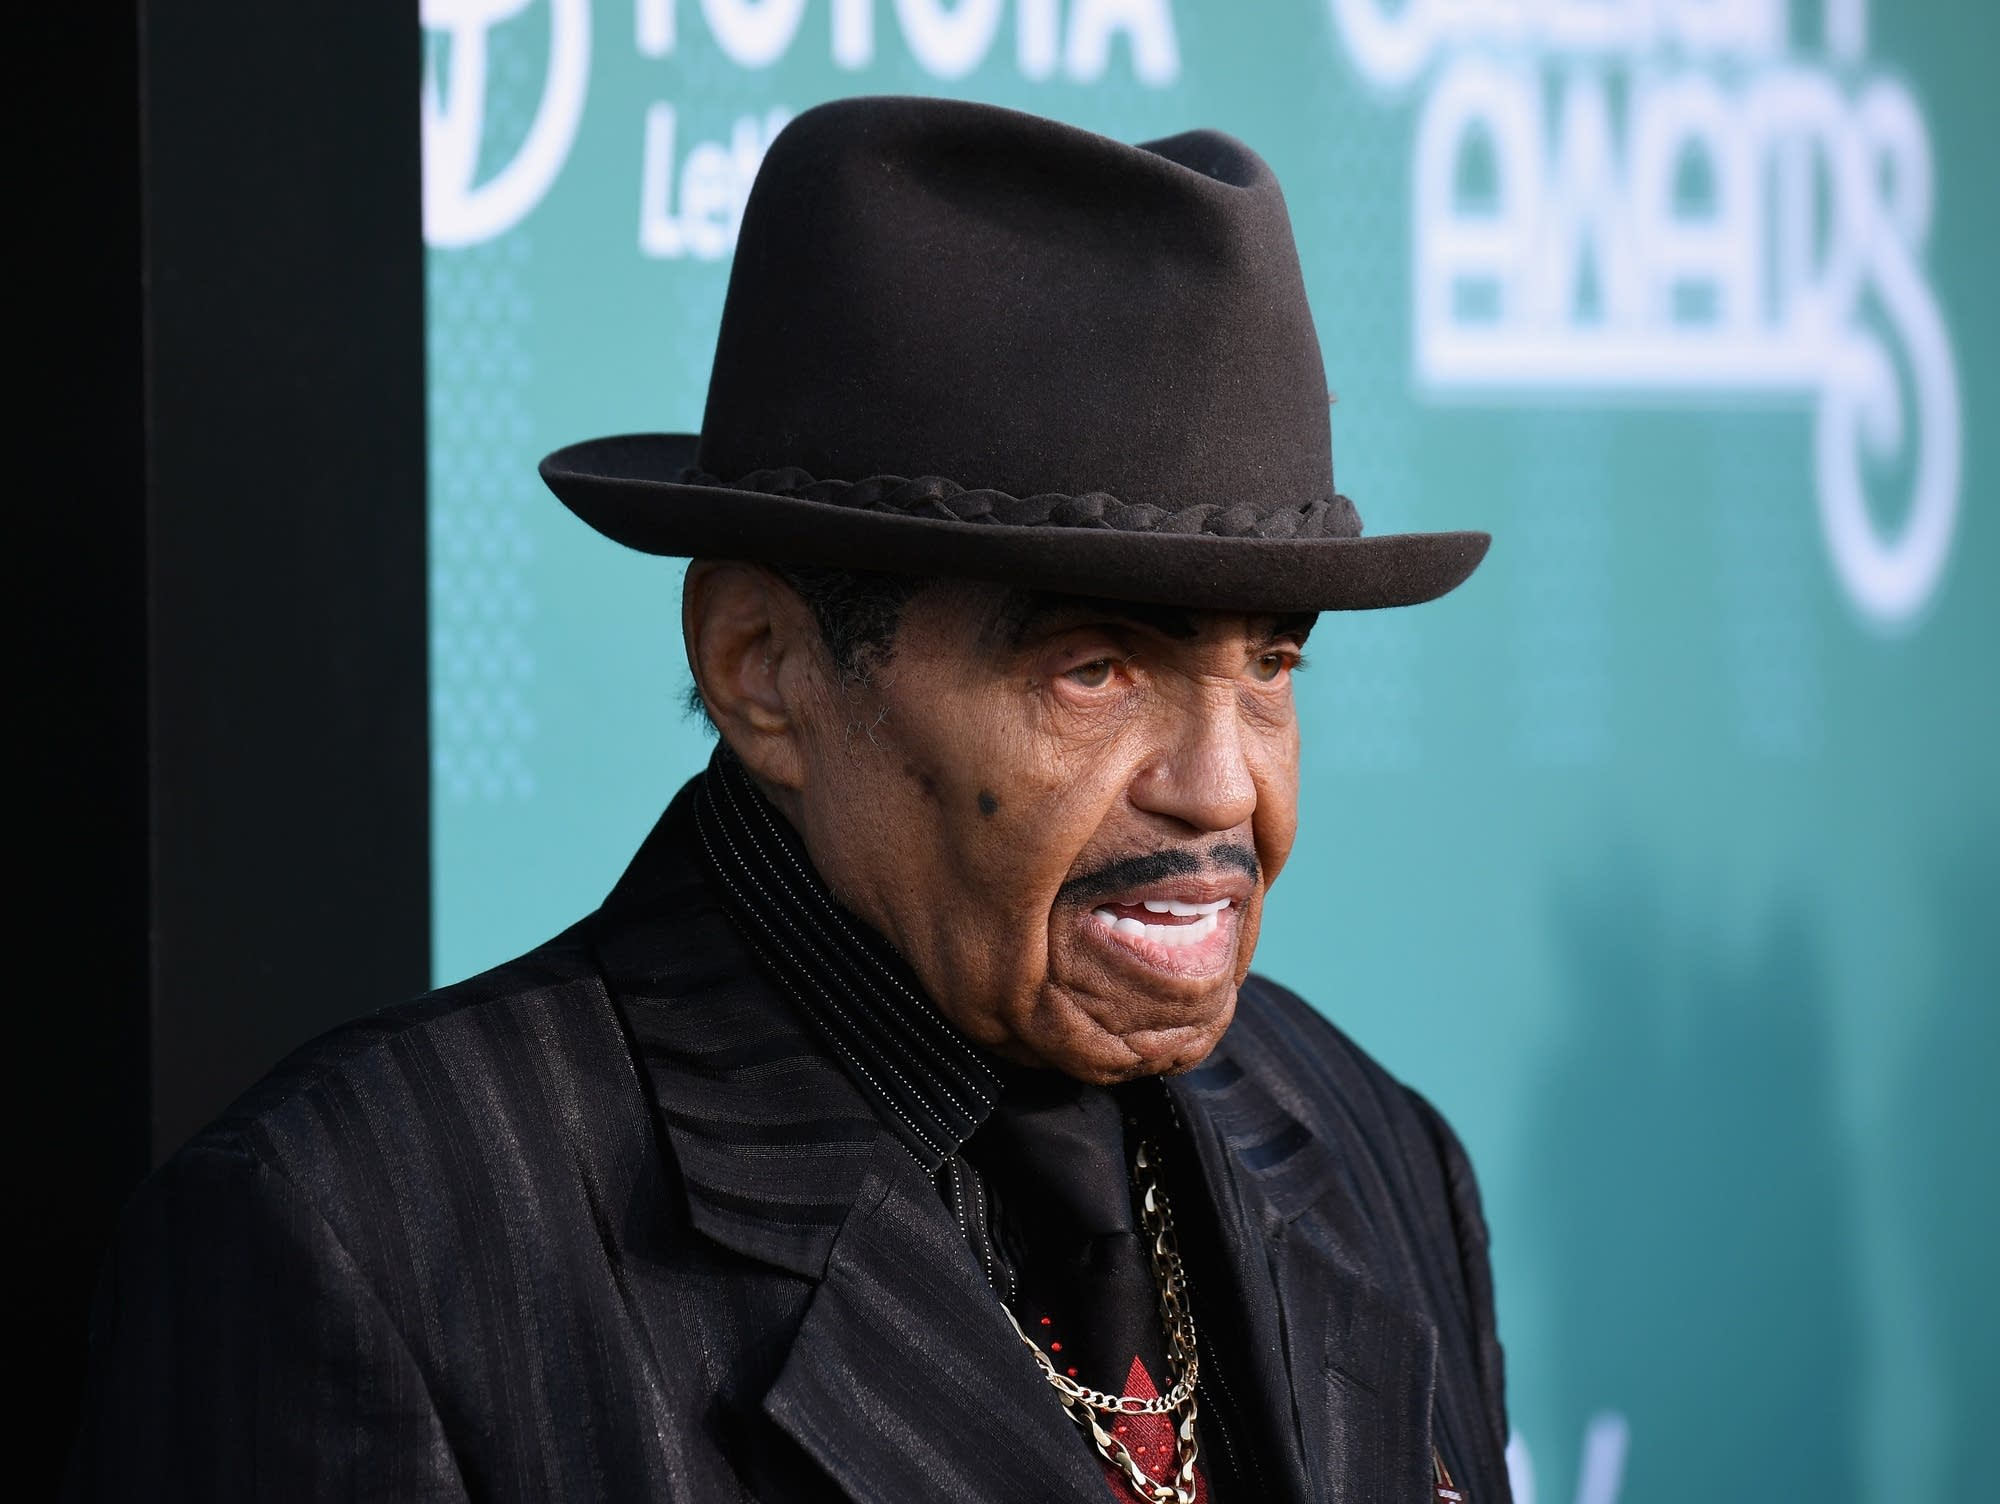 Joe Jackson at the Soul Train Awards in 2017.